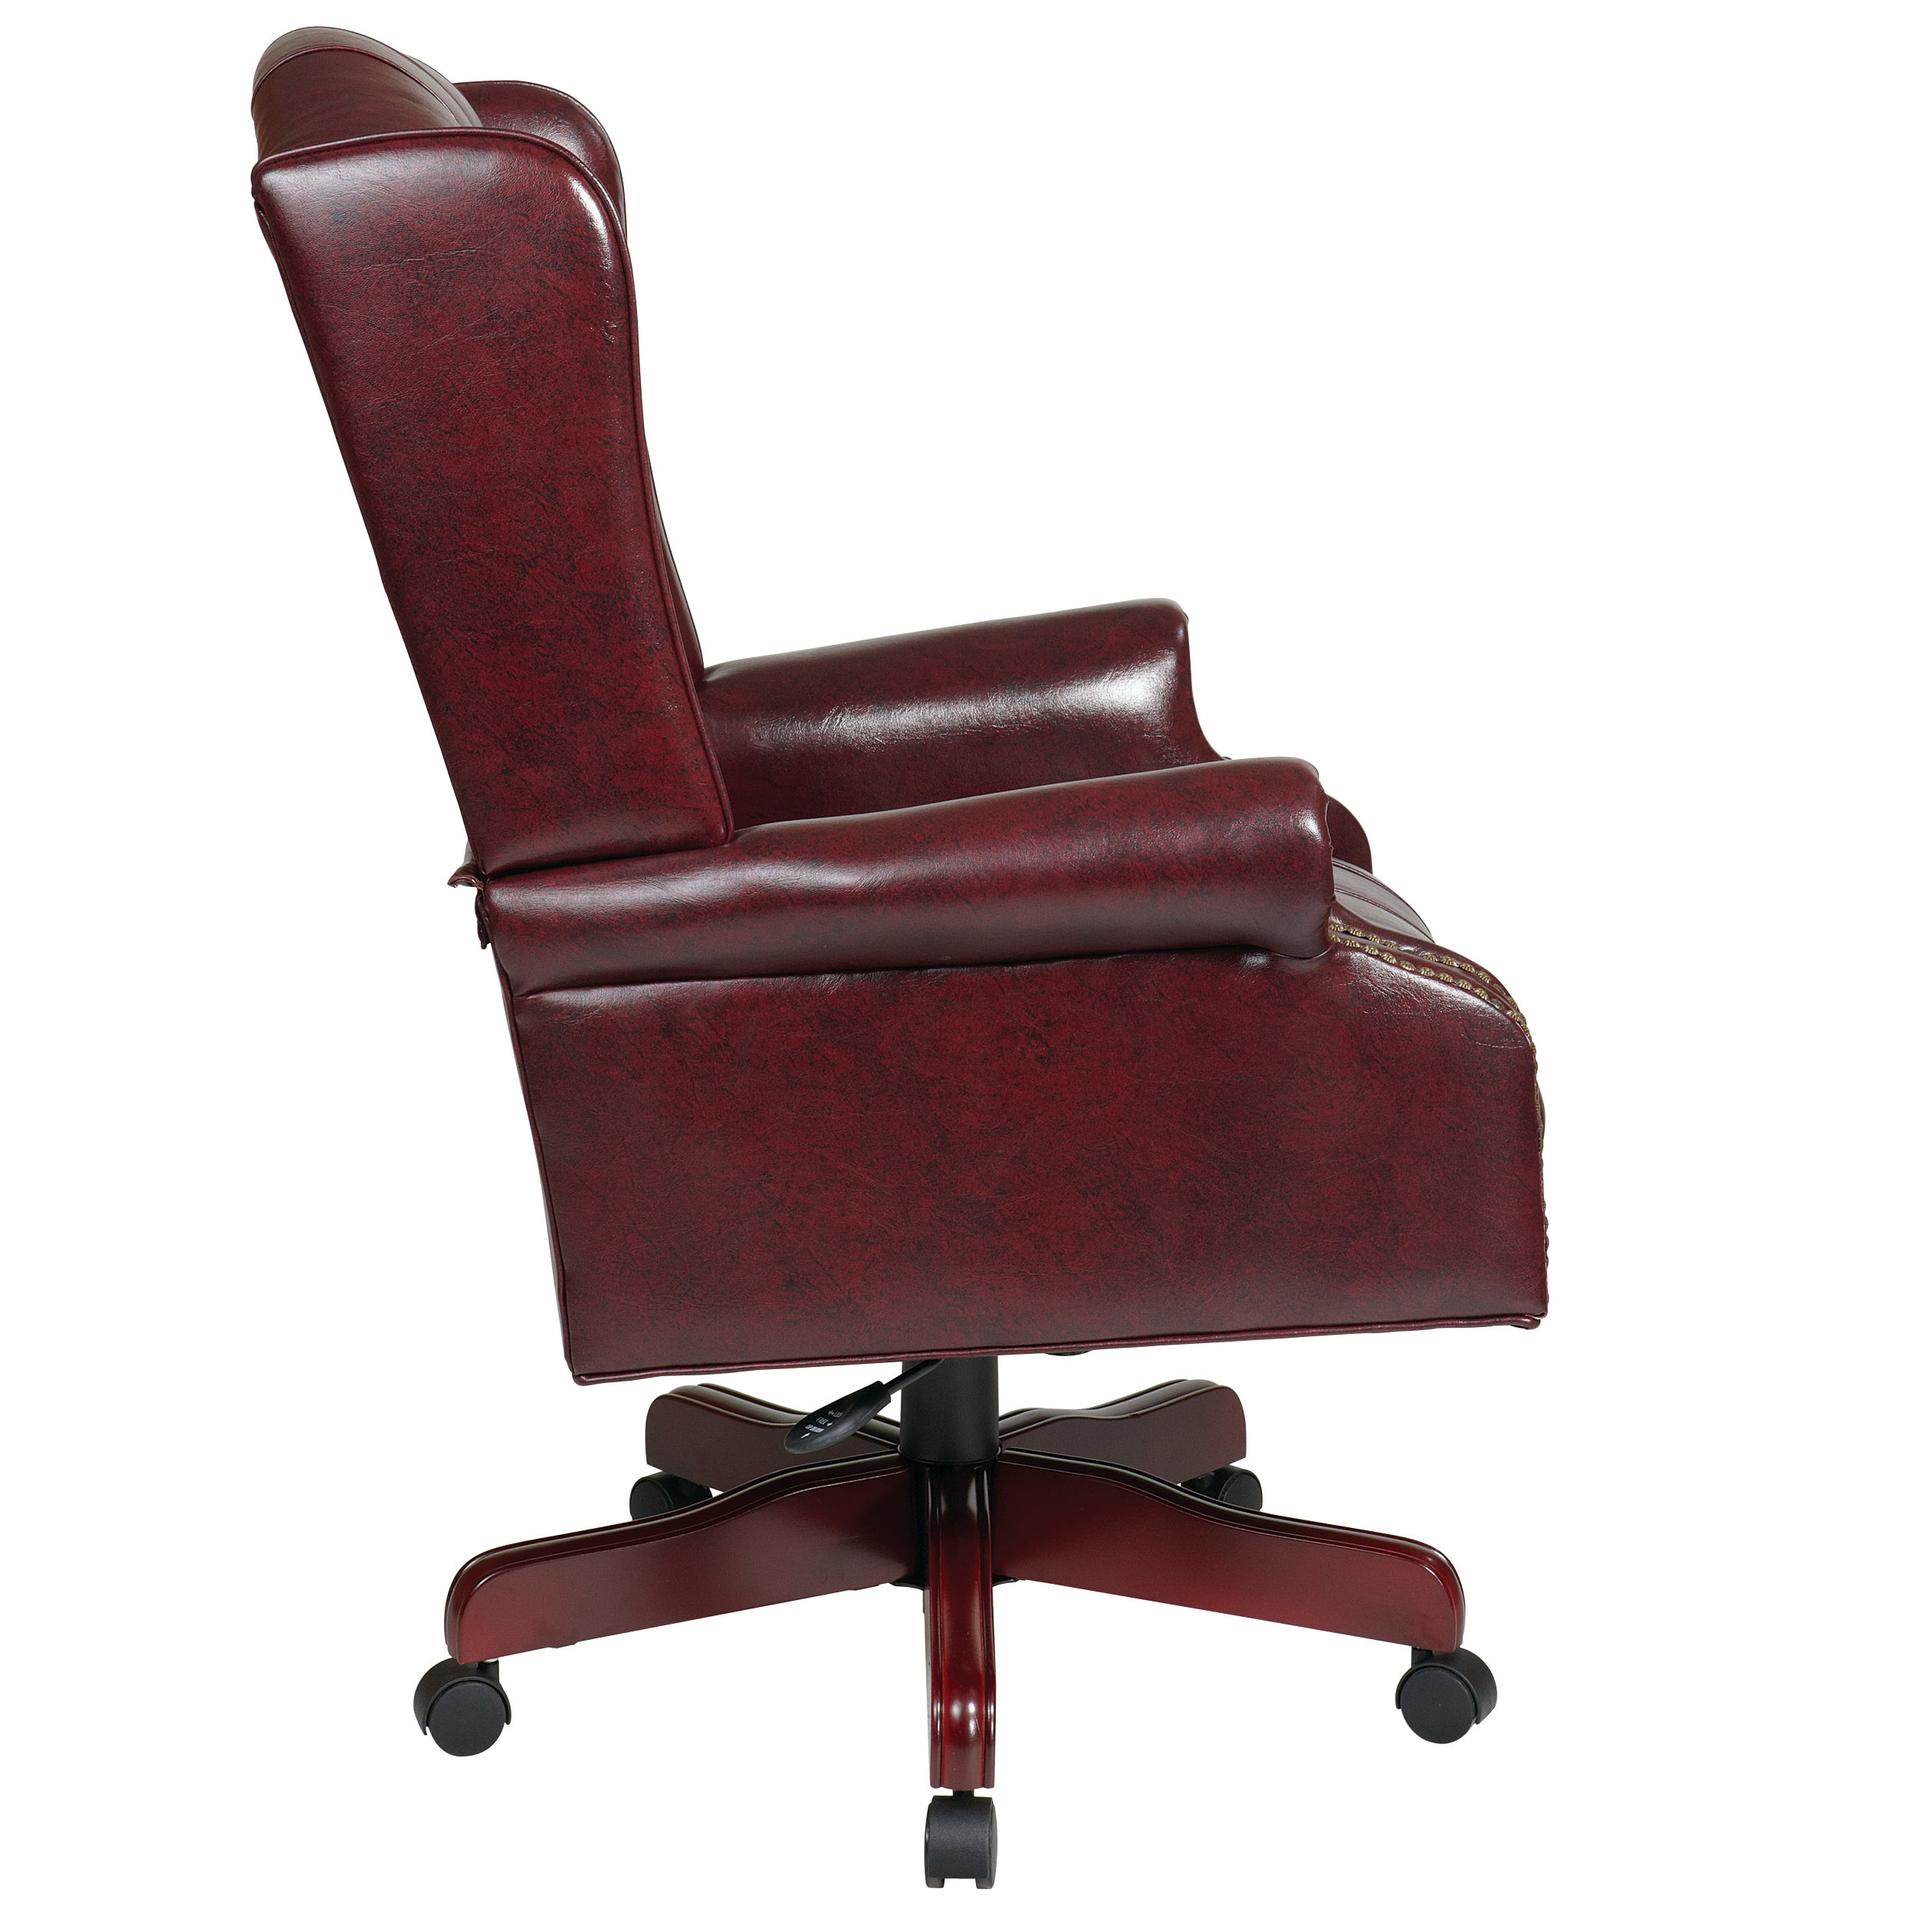 Miraculous Office Star Products Work Smart Jamestown Vinyl Deluxe High Back Traditional Executive Chair N A Evergreenethics Interior Chair Design Evergreenethicsorg